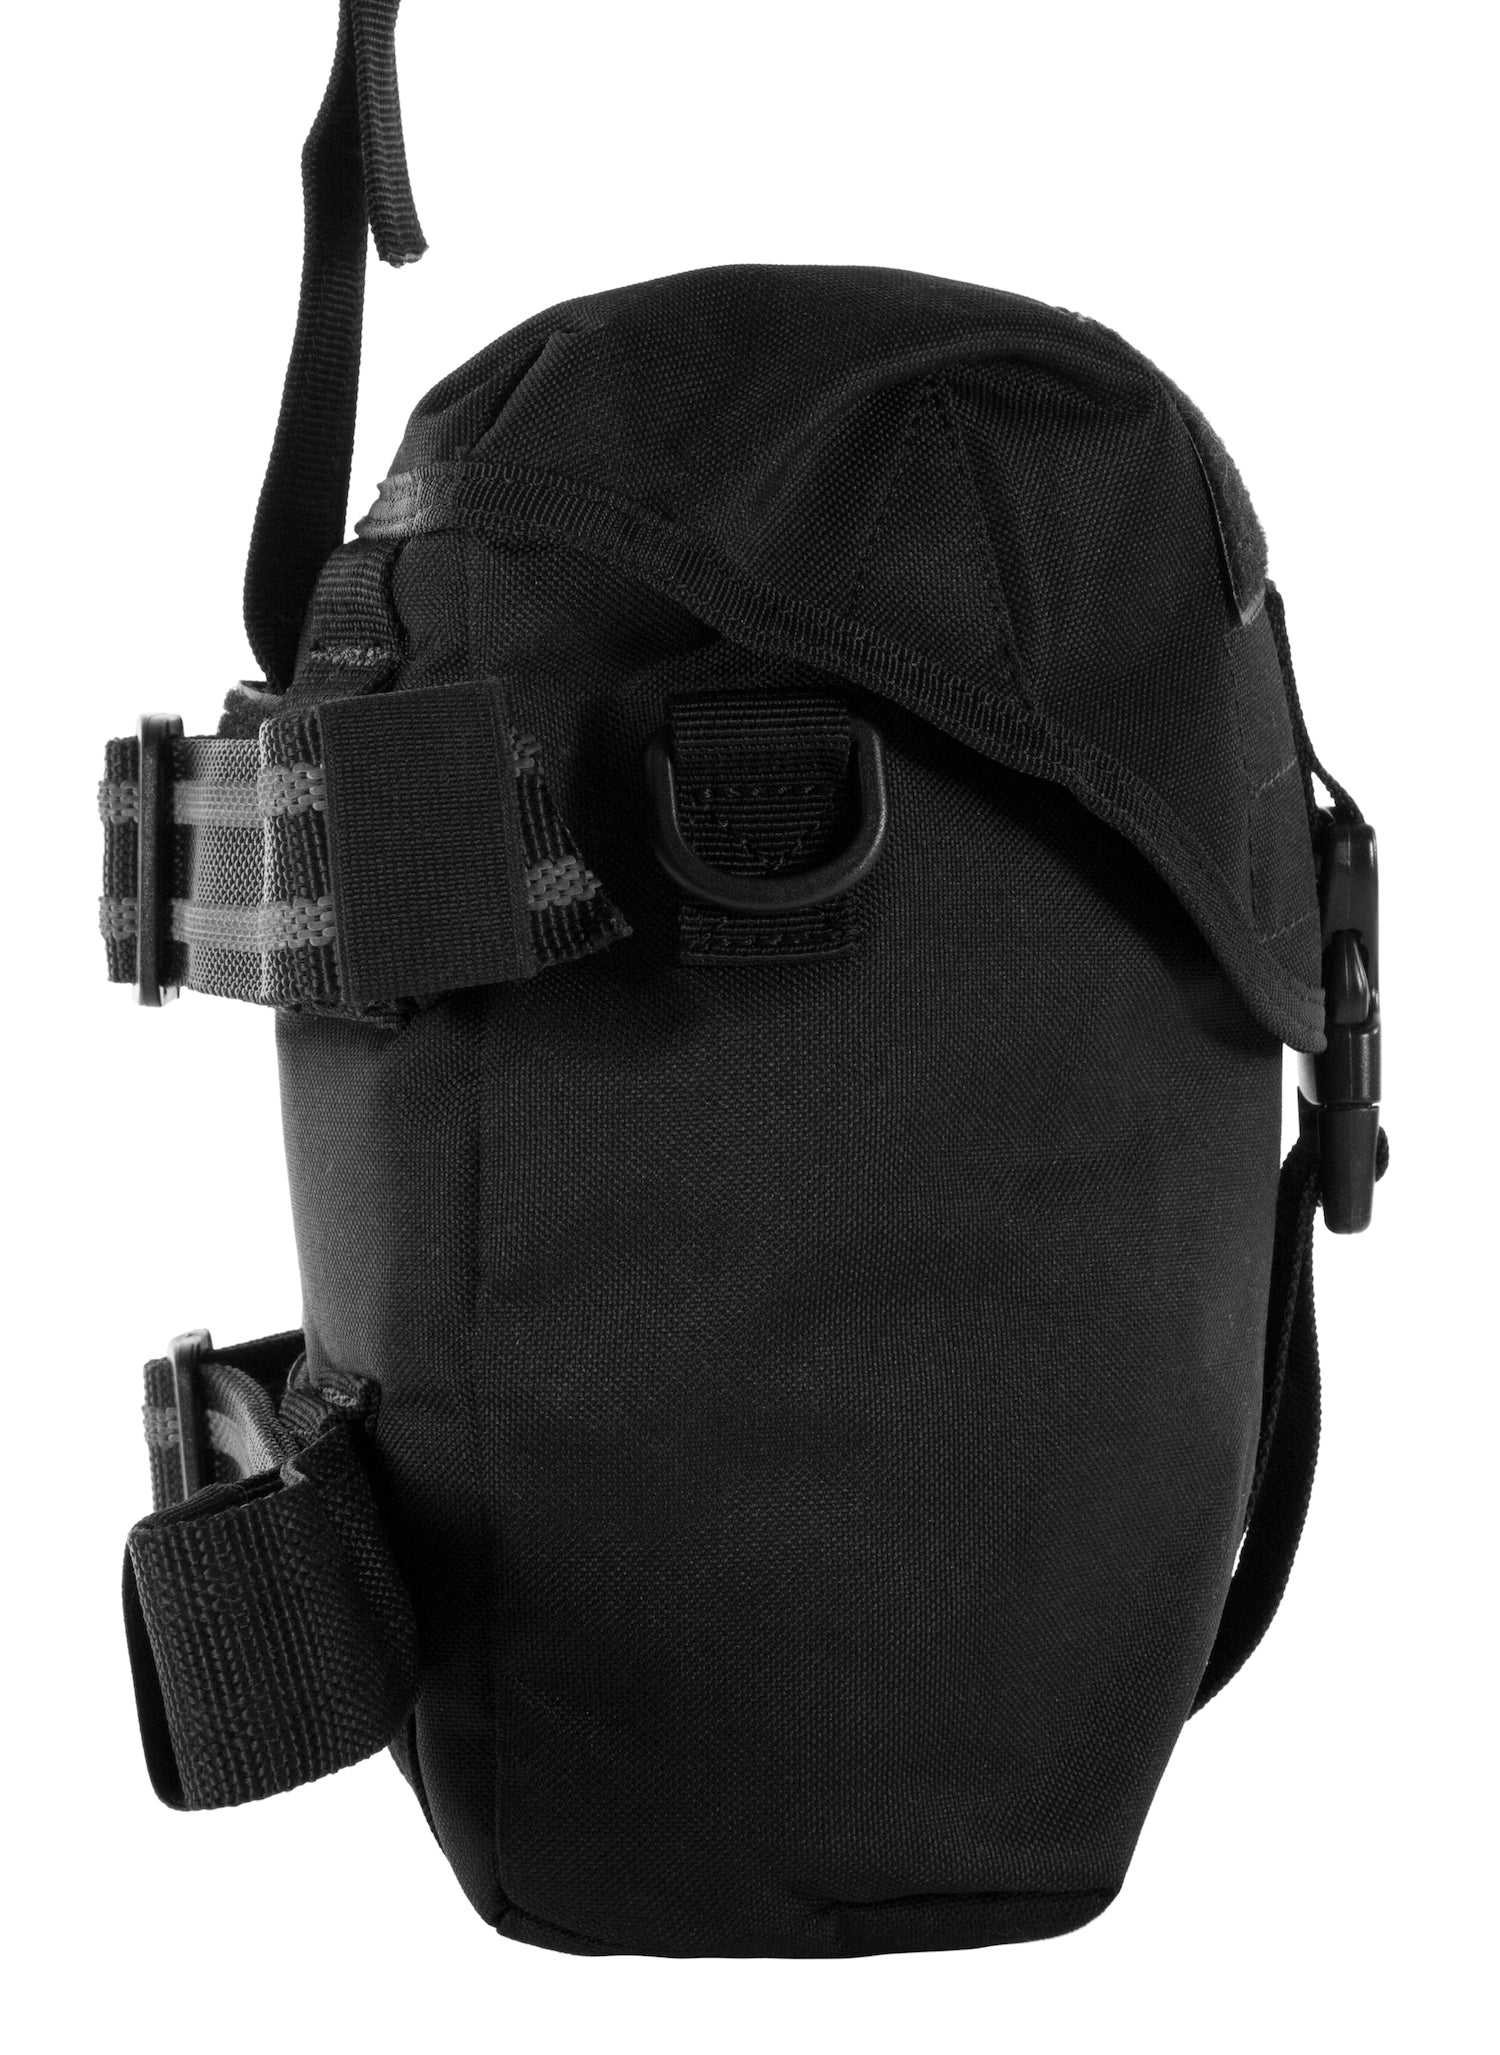 MIRA Safety gas mask pouch side view